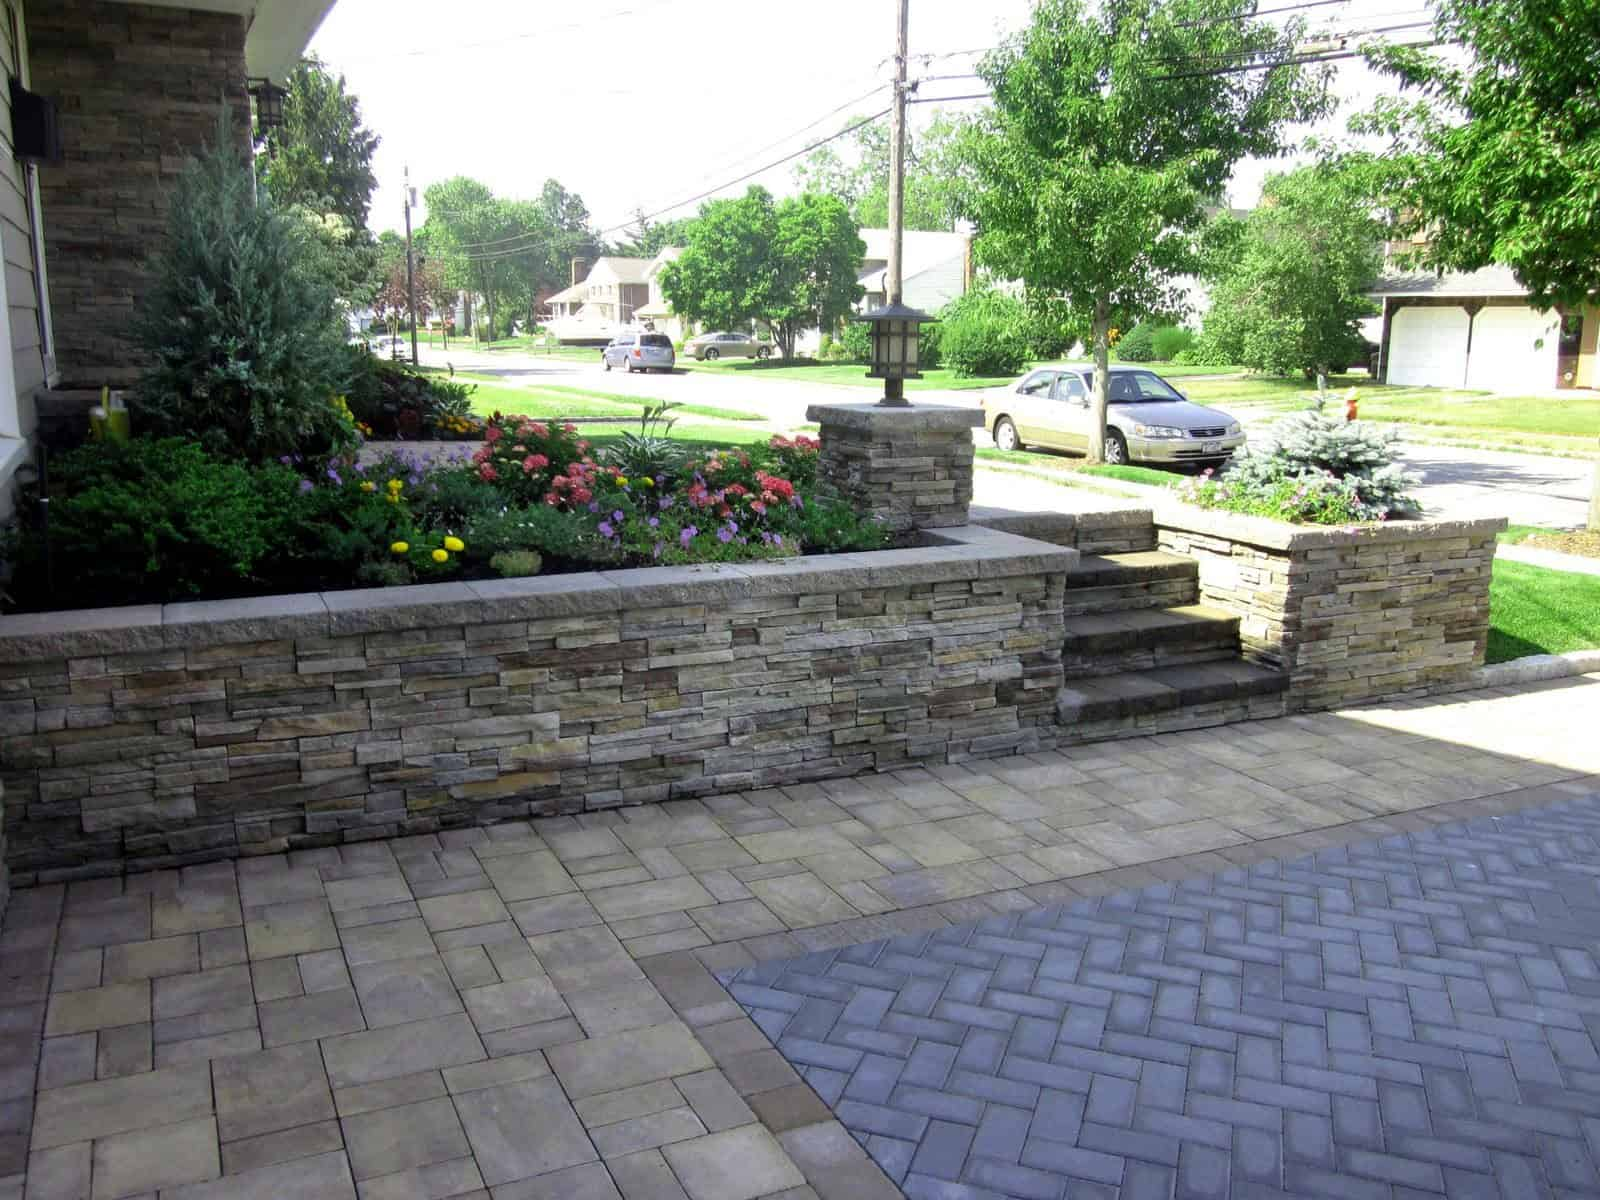 Retaining Wall with Cultured Stone Pro-Fit–Alpine Ledgestone. Color: Pheasant. Capped with Cambridge Splitface Wall cap Toffee/Onyx-color - Massapequa, Long Island NY